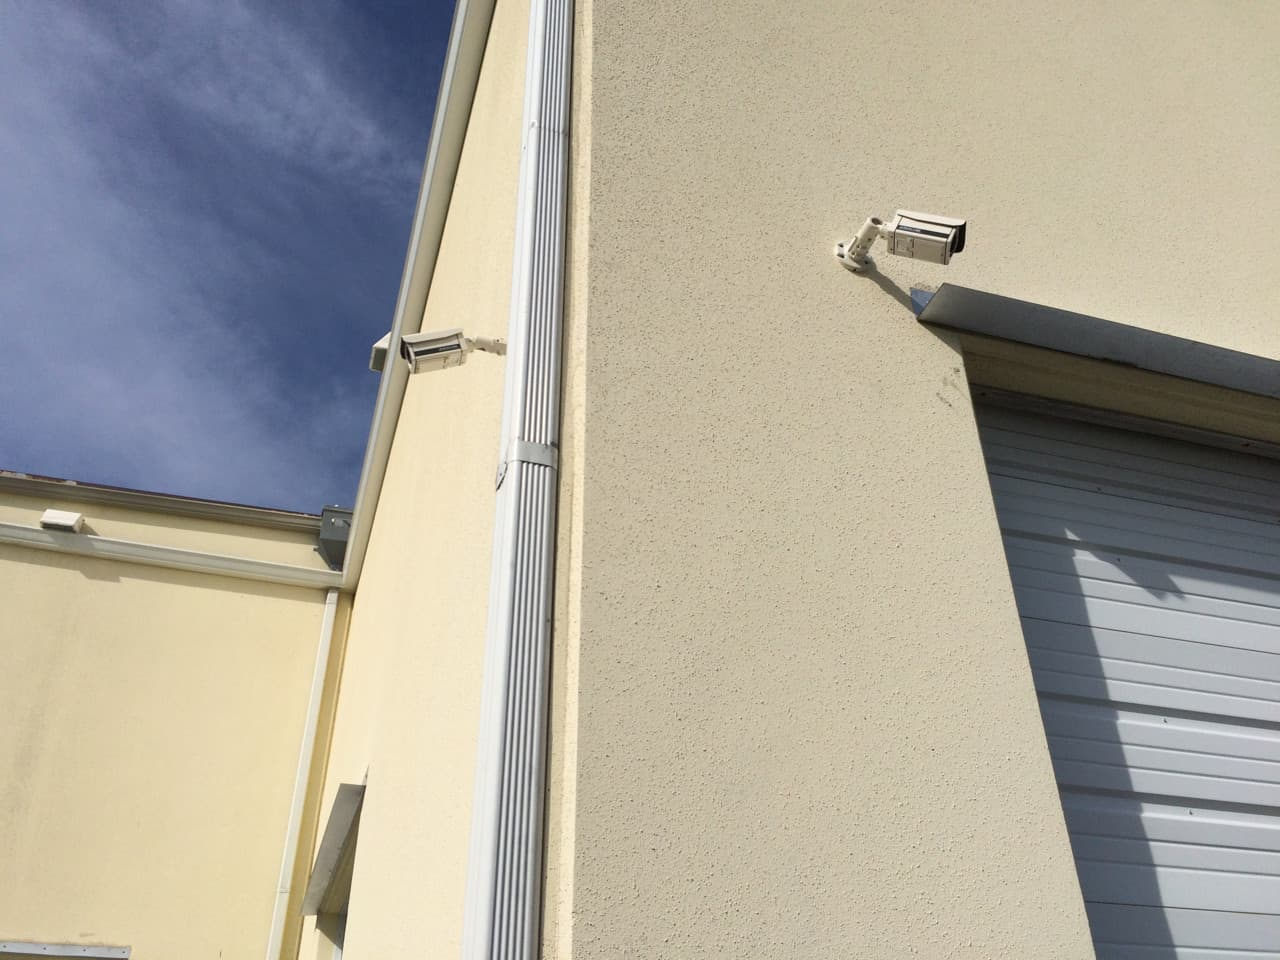 Outdoor Surveillance Camera Installed on Warehouse